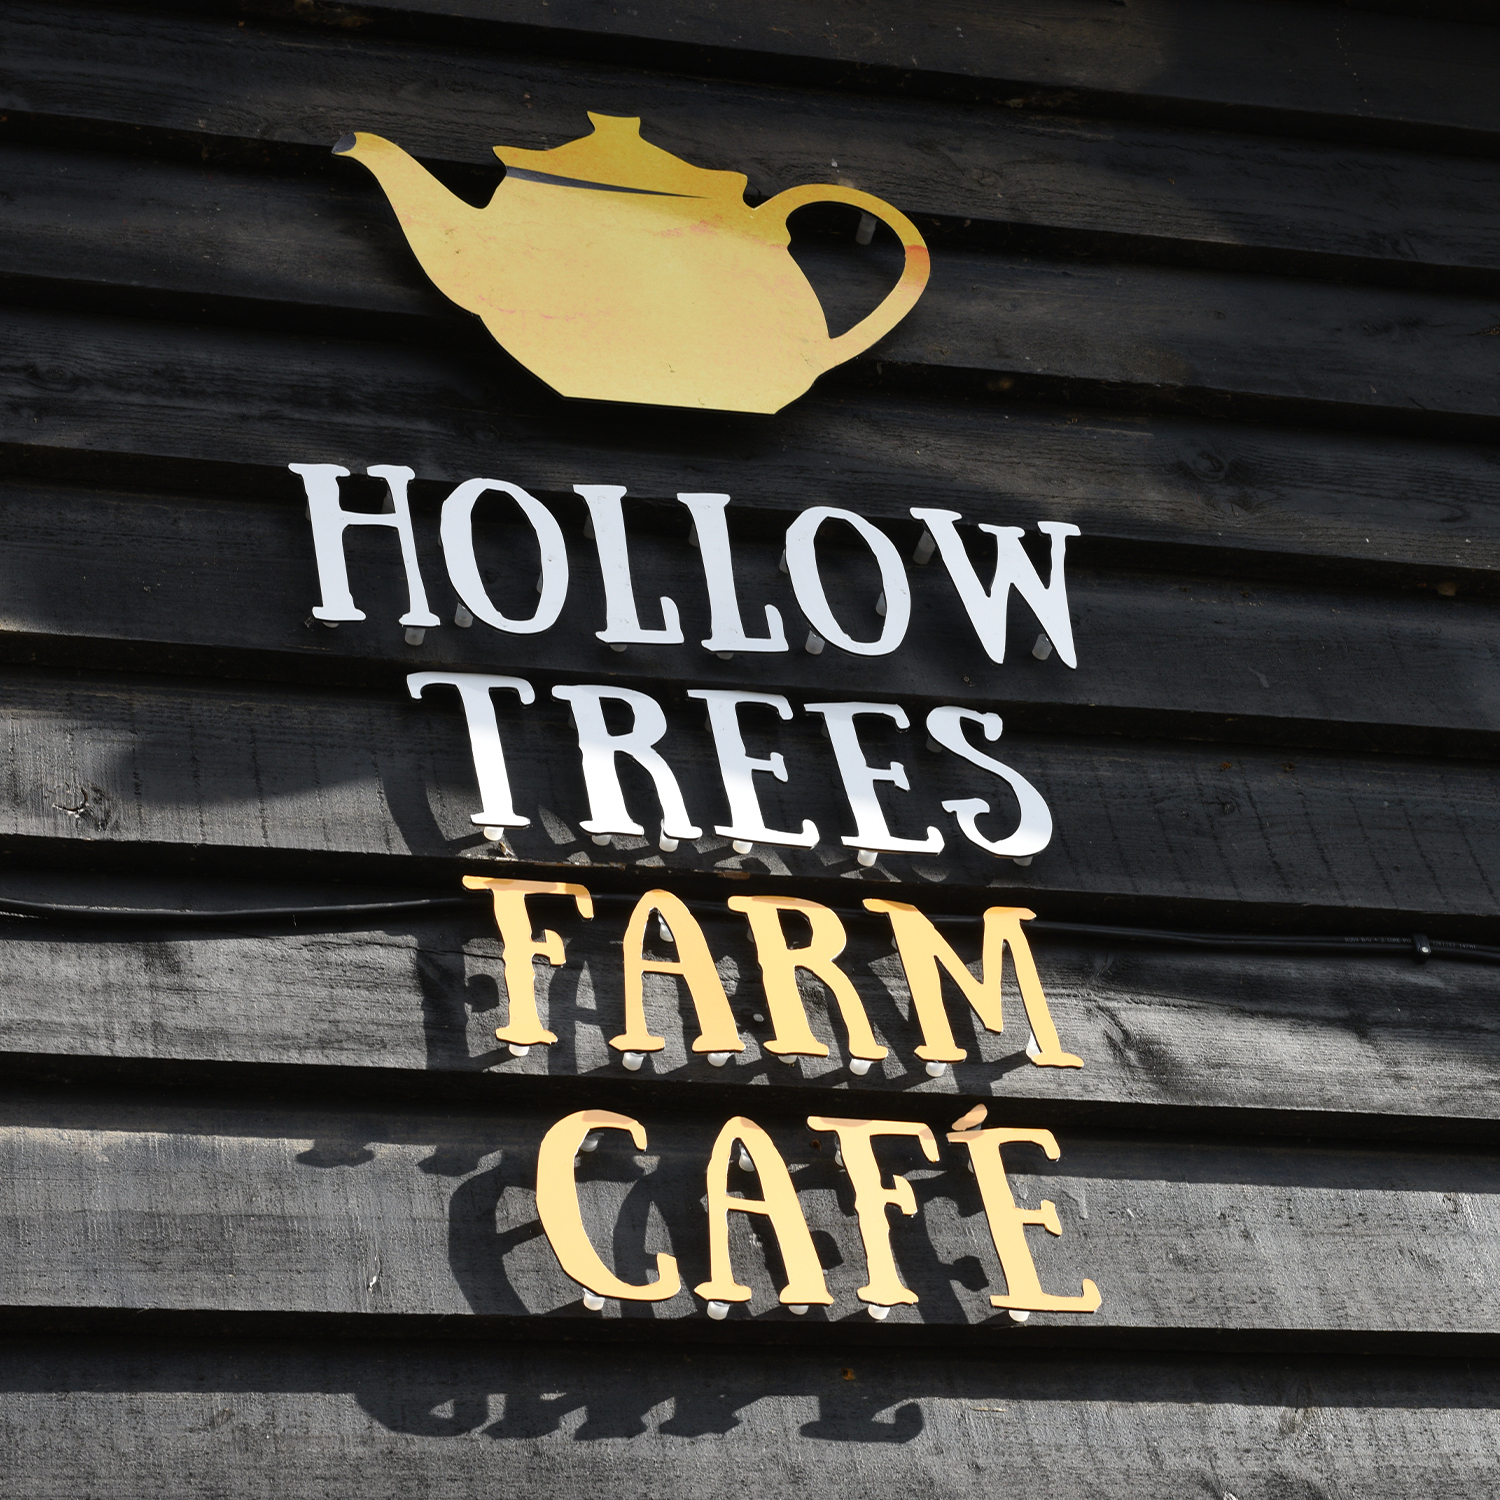 Hollow Trees Farm Cafe Sign